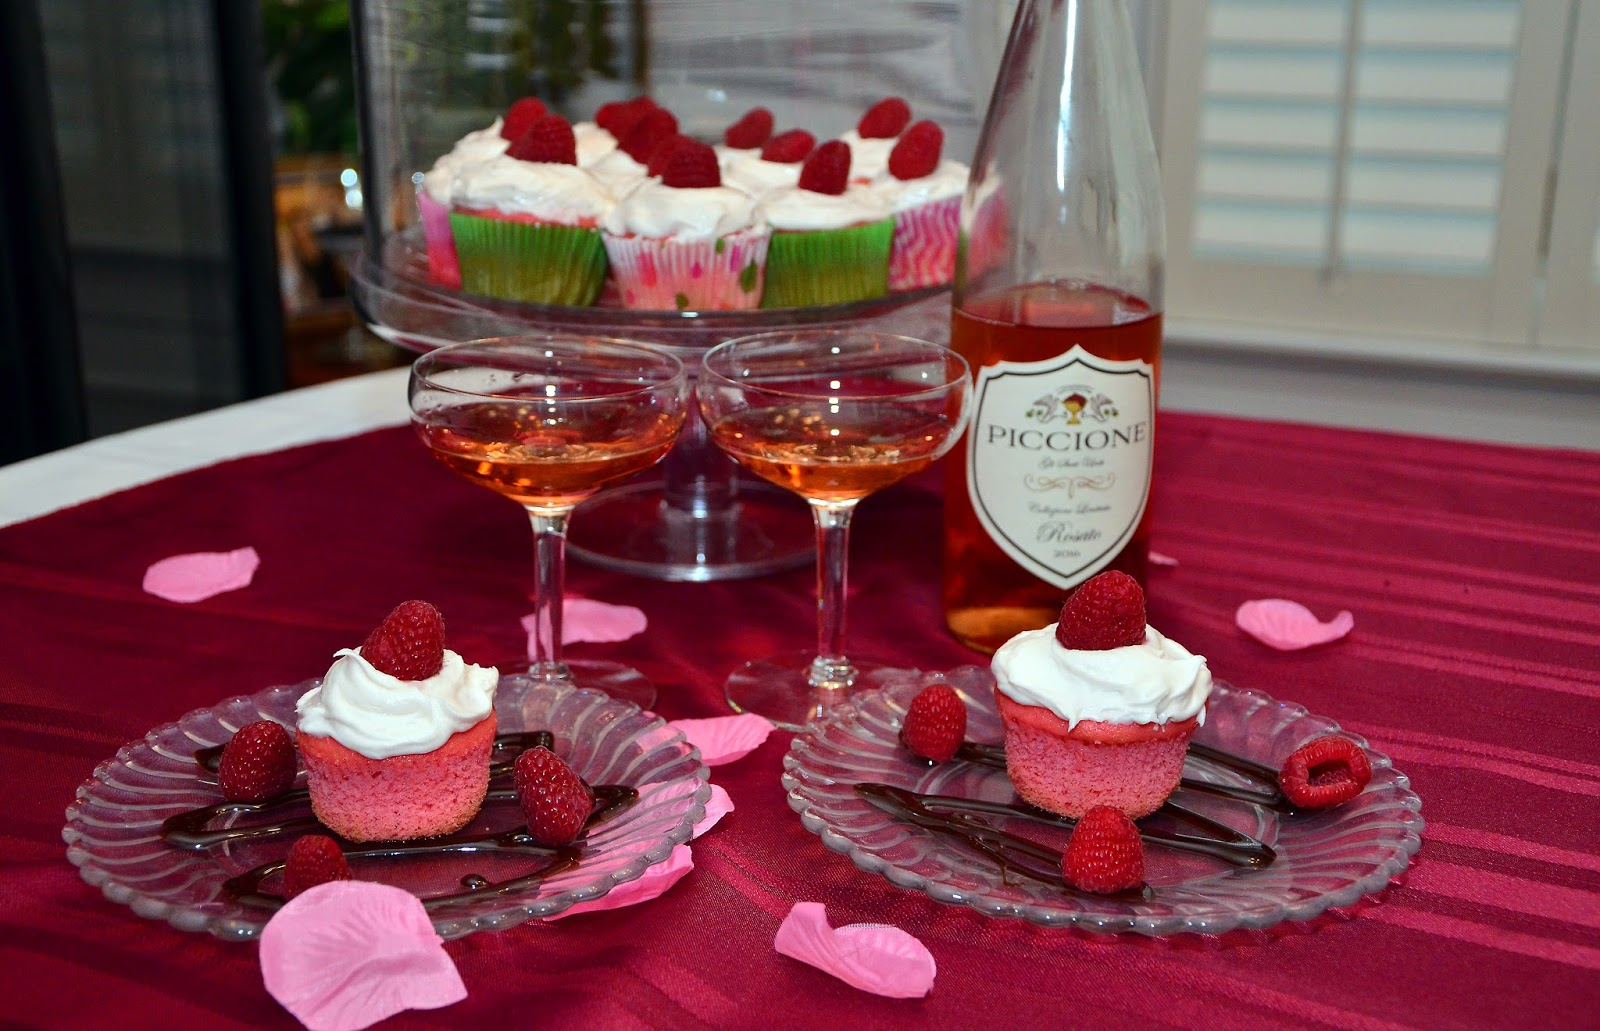 Rosé cupcakes paired with Rosé wine is the perfect pairing -